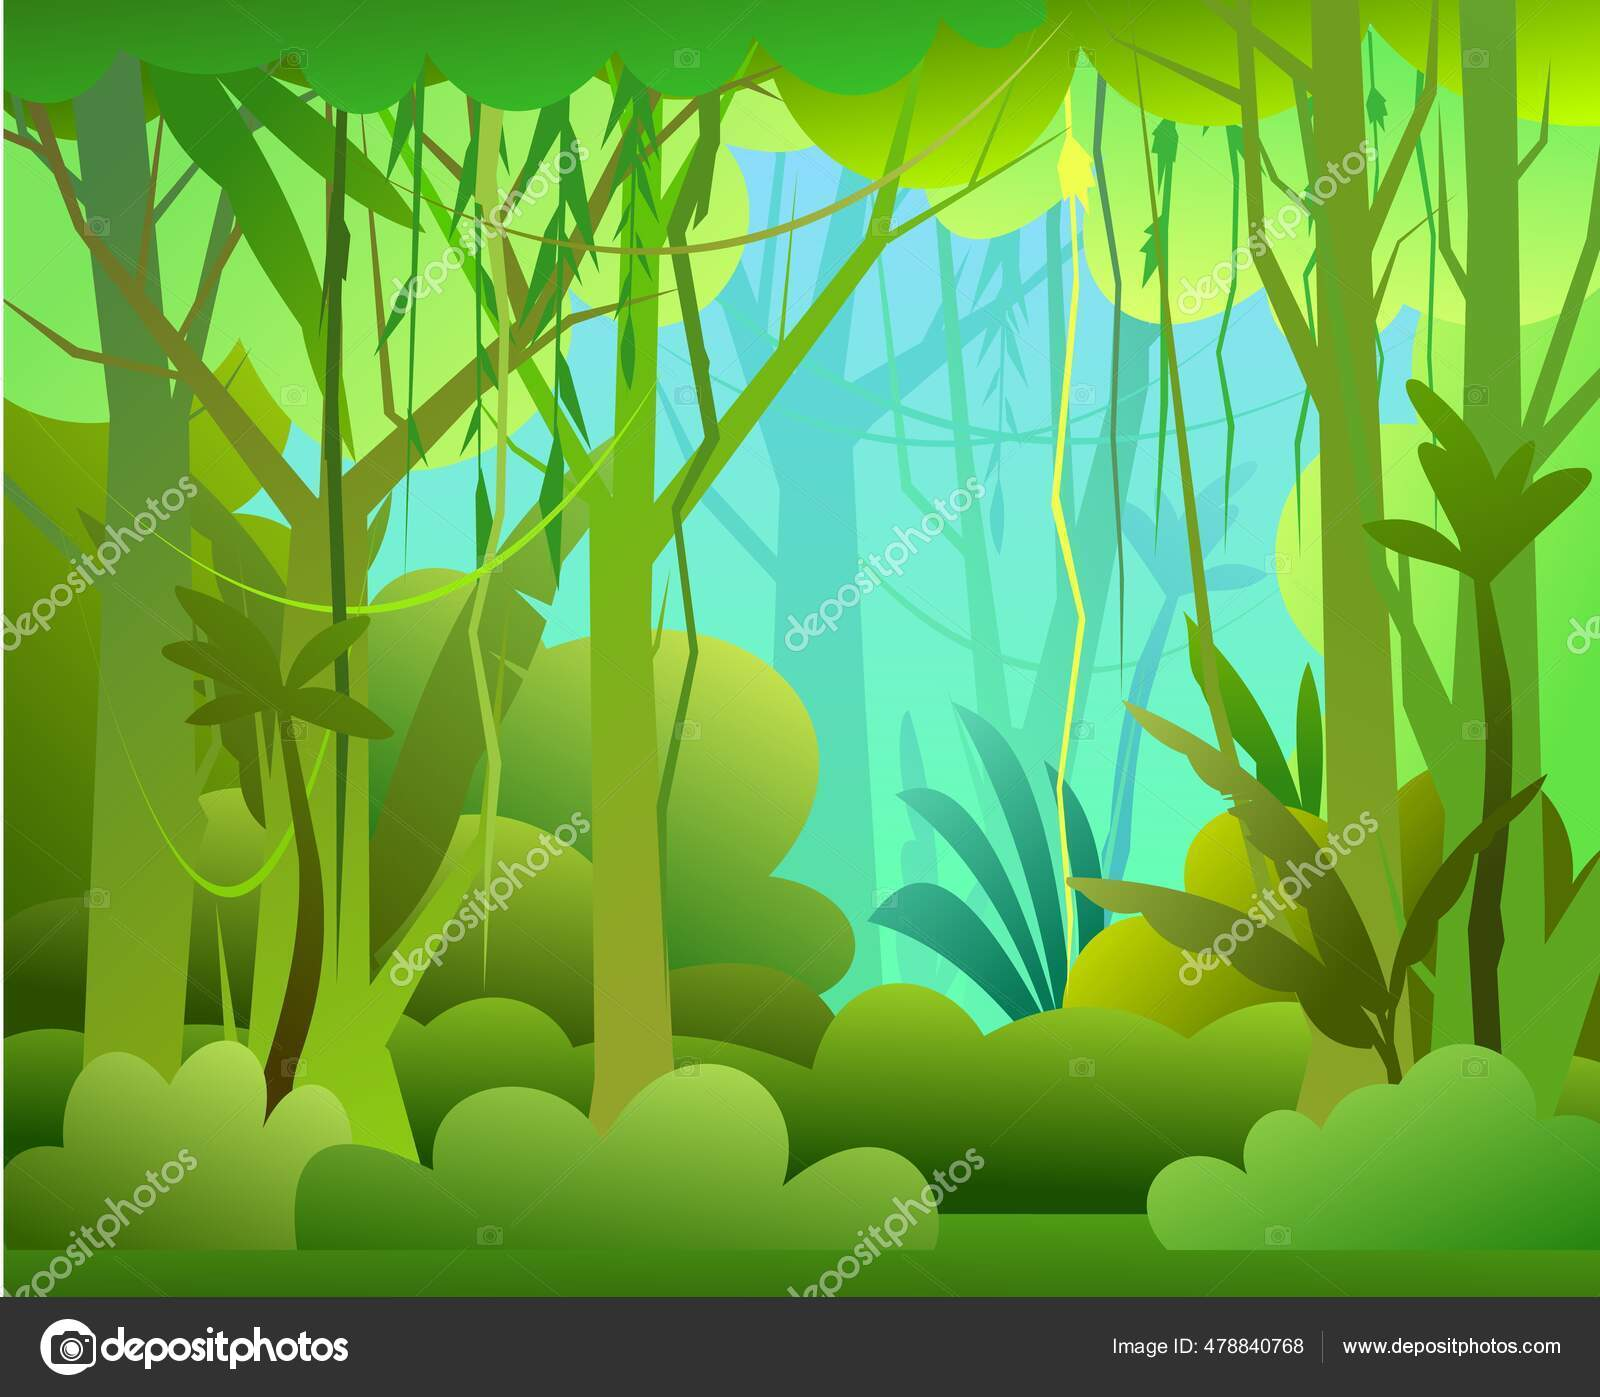 Forest cartoon animals educational game vector. Jungle Illustration Dense Wild Growing Tropical Plants Tall Branched Trunks Stock Vector Image By C Webpainter Std 478840768